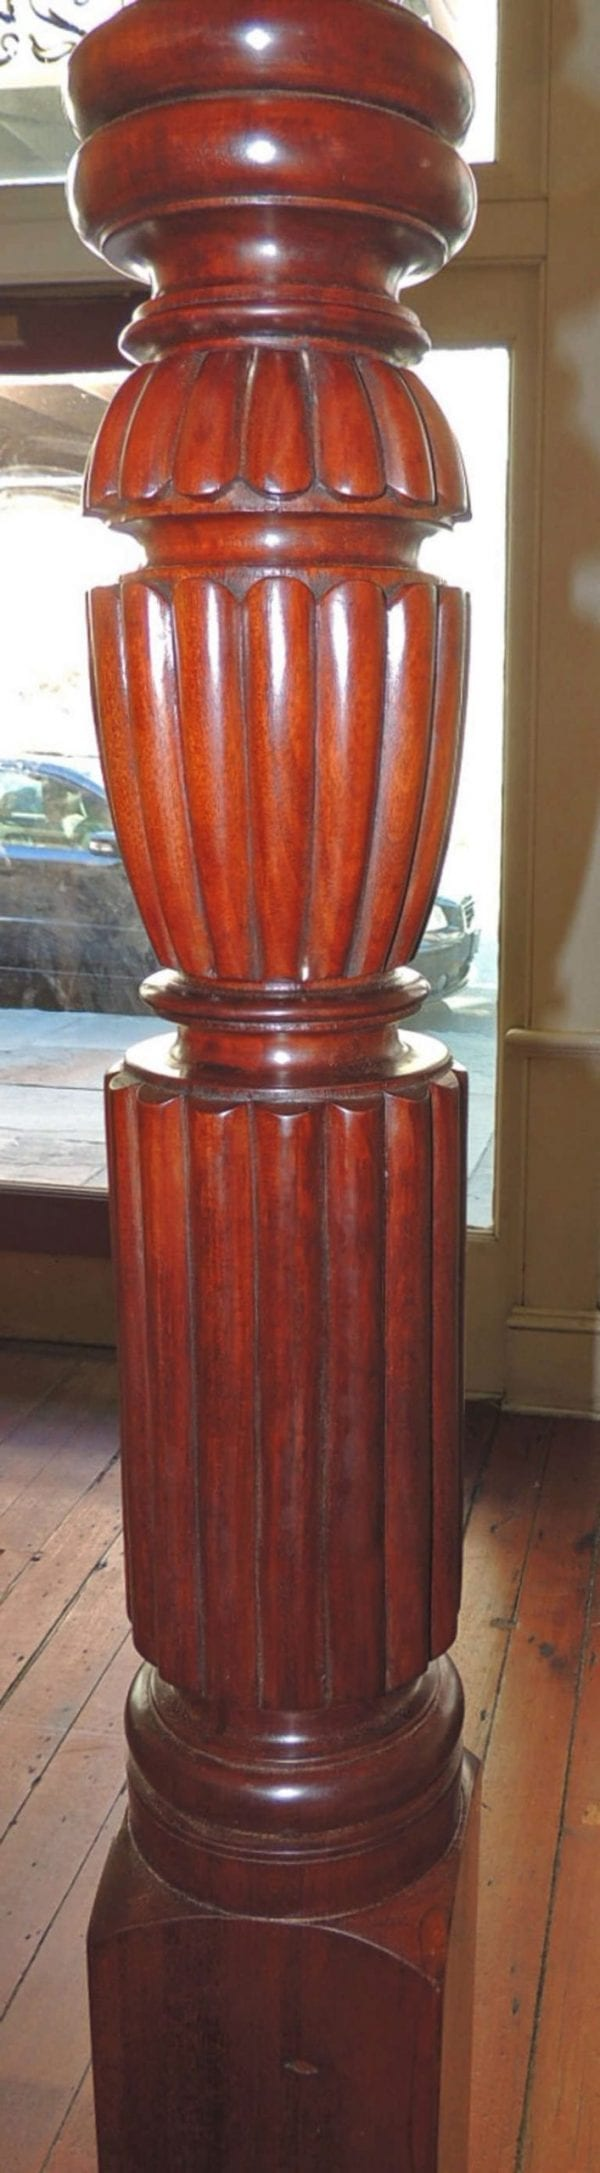 19th Century Jamaican Mahogany Waterfall Bed